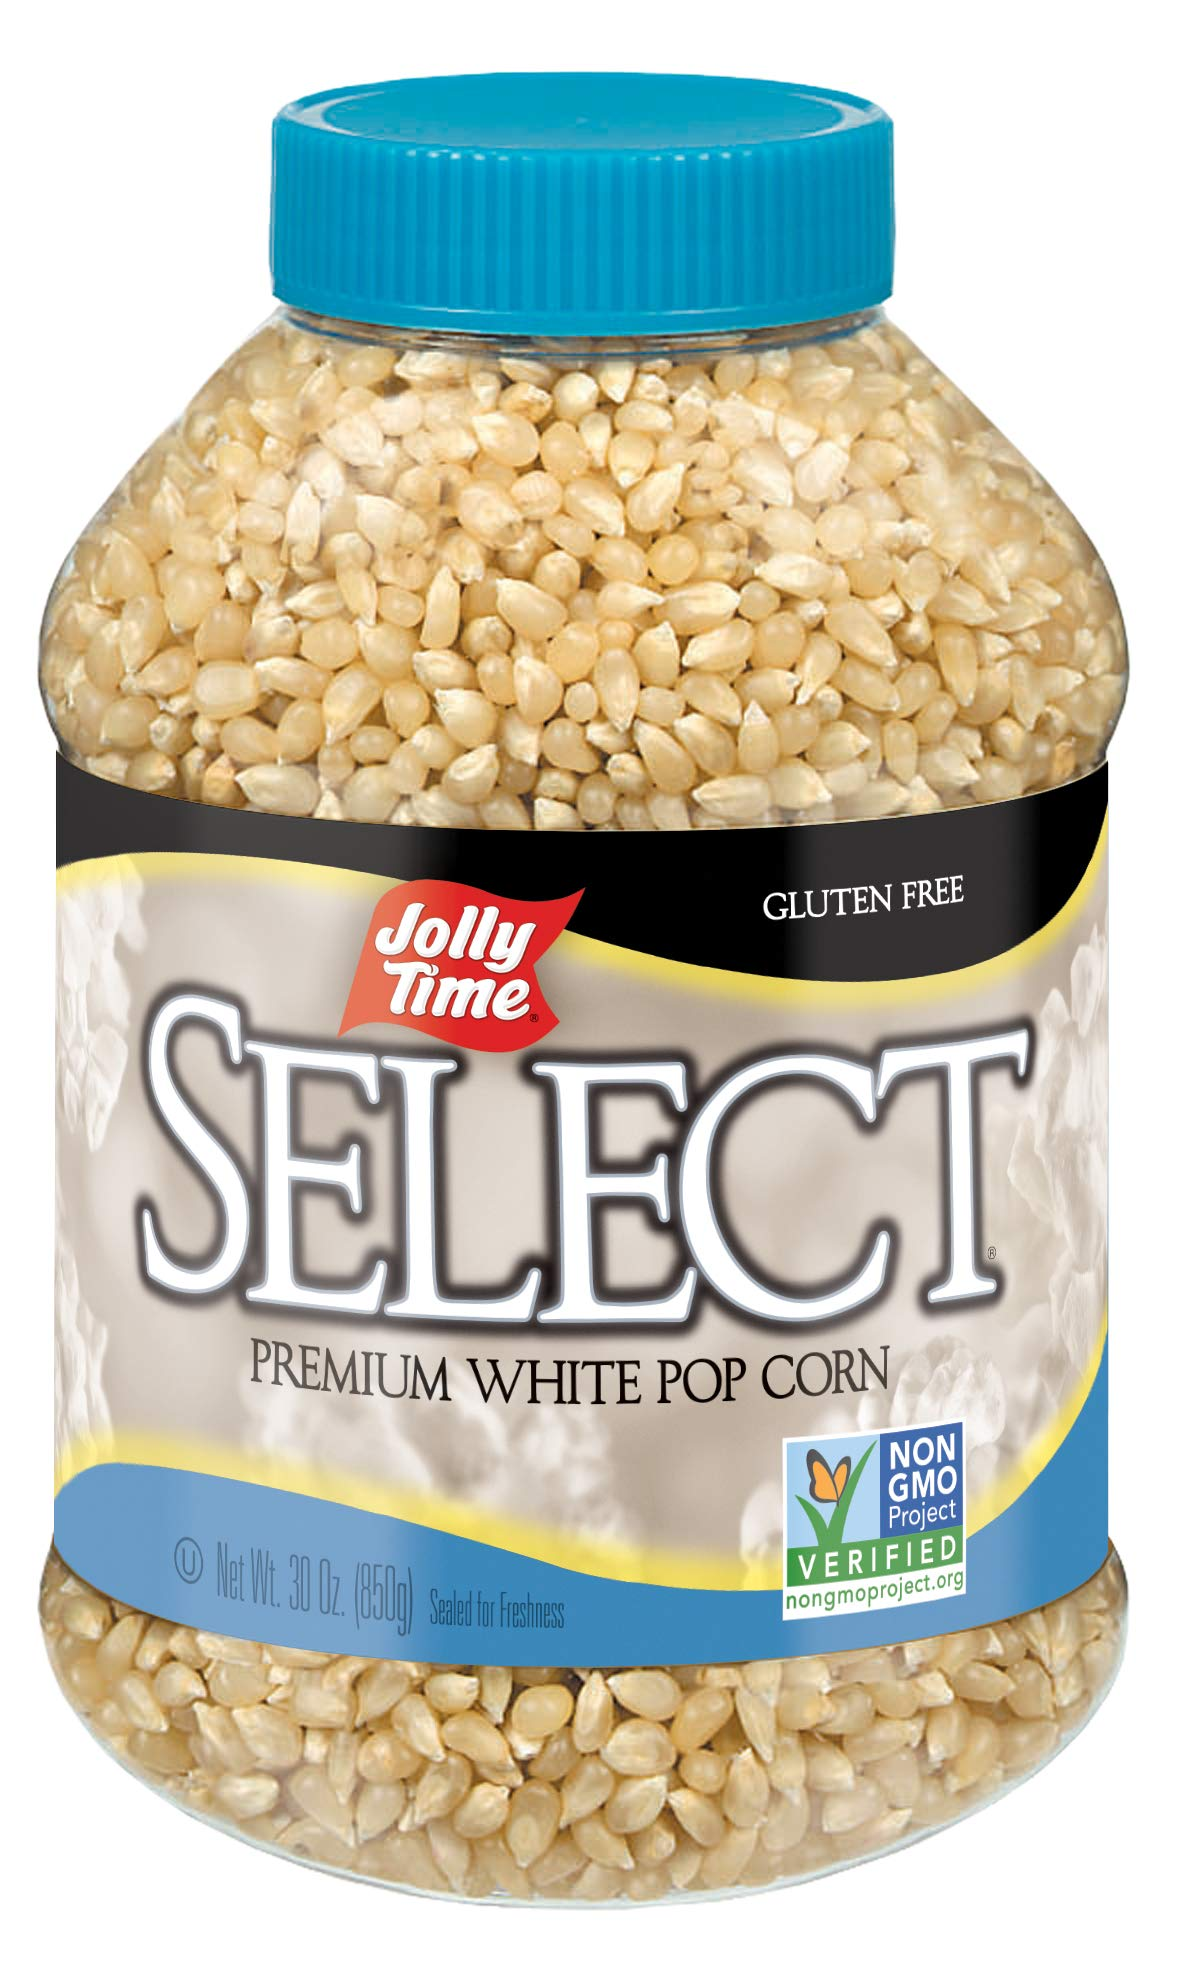 JOLLY TIME Select Premium White Popcorn Kernels - Whole Grain & Non-GMO, 30 oz Jars (Pack of 6) by Jolly Time